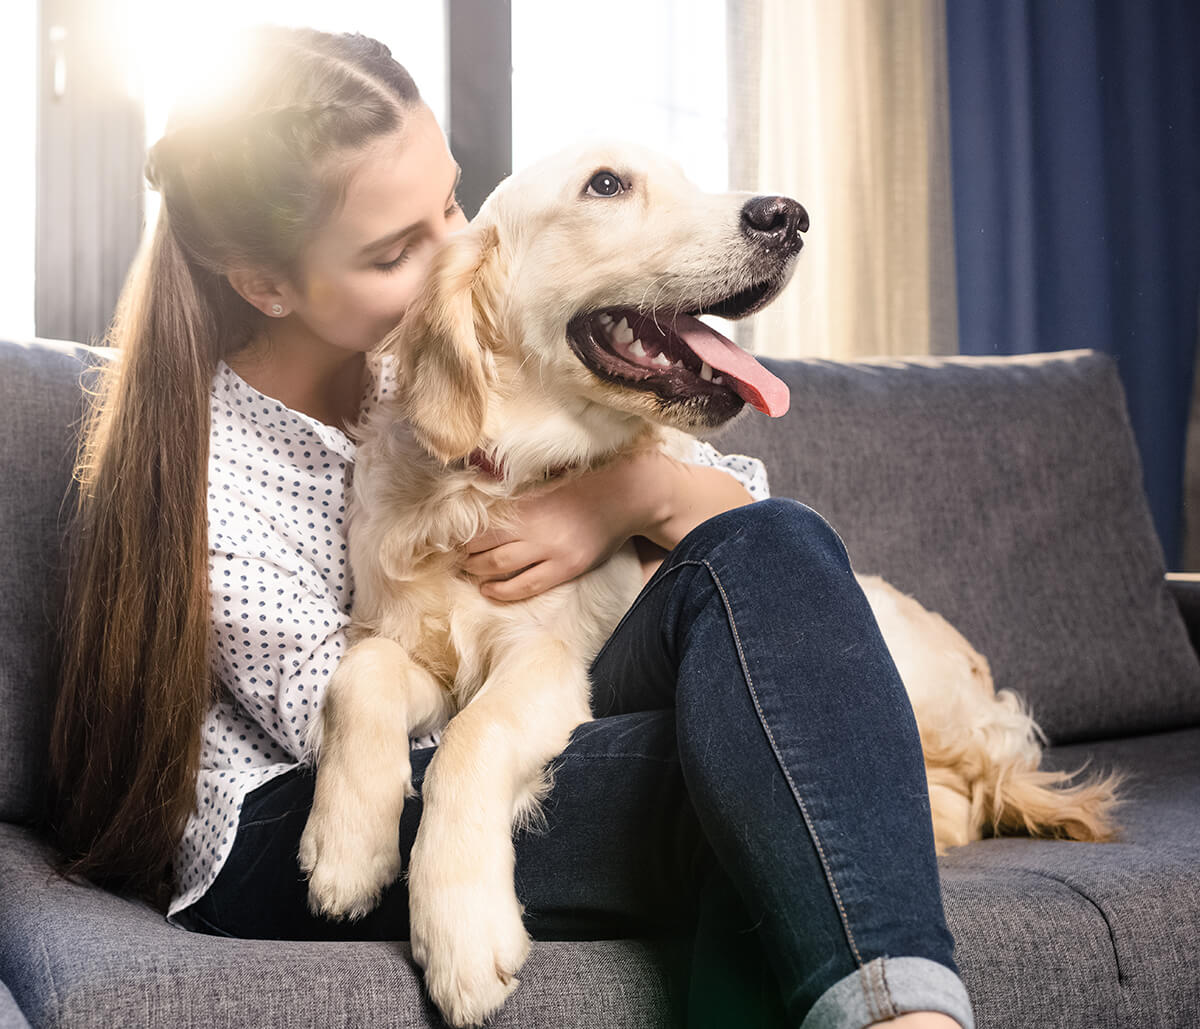 Dog Skin Rash Treatment Starts with Exceptional Diagnostics at Our Jacksonville, FL Area Office